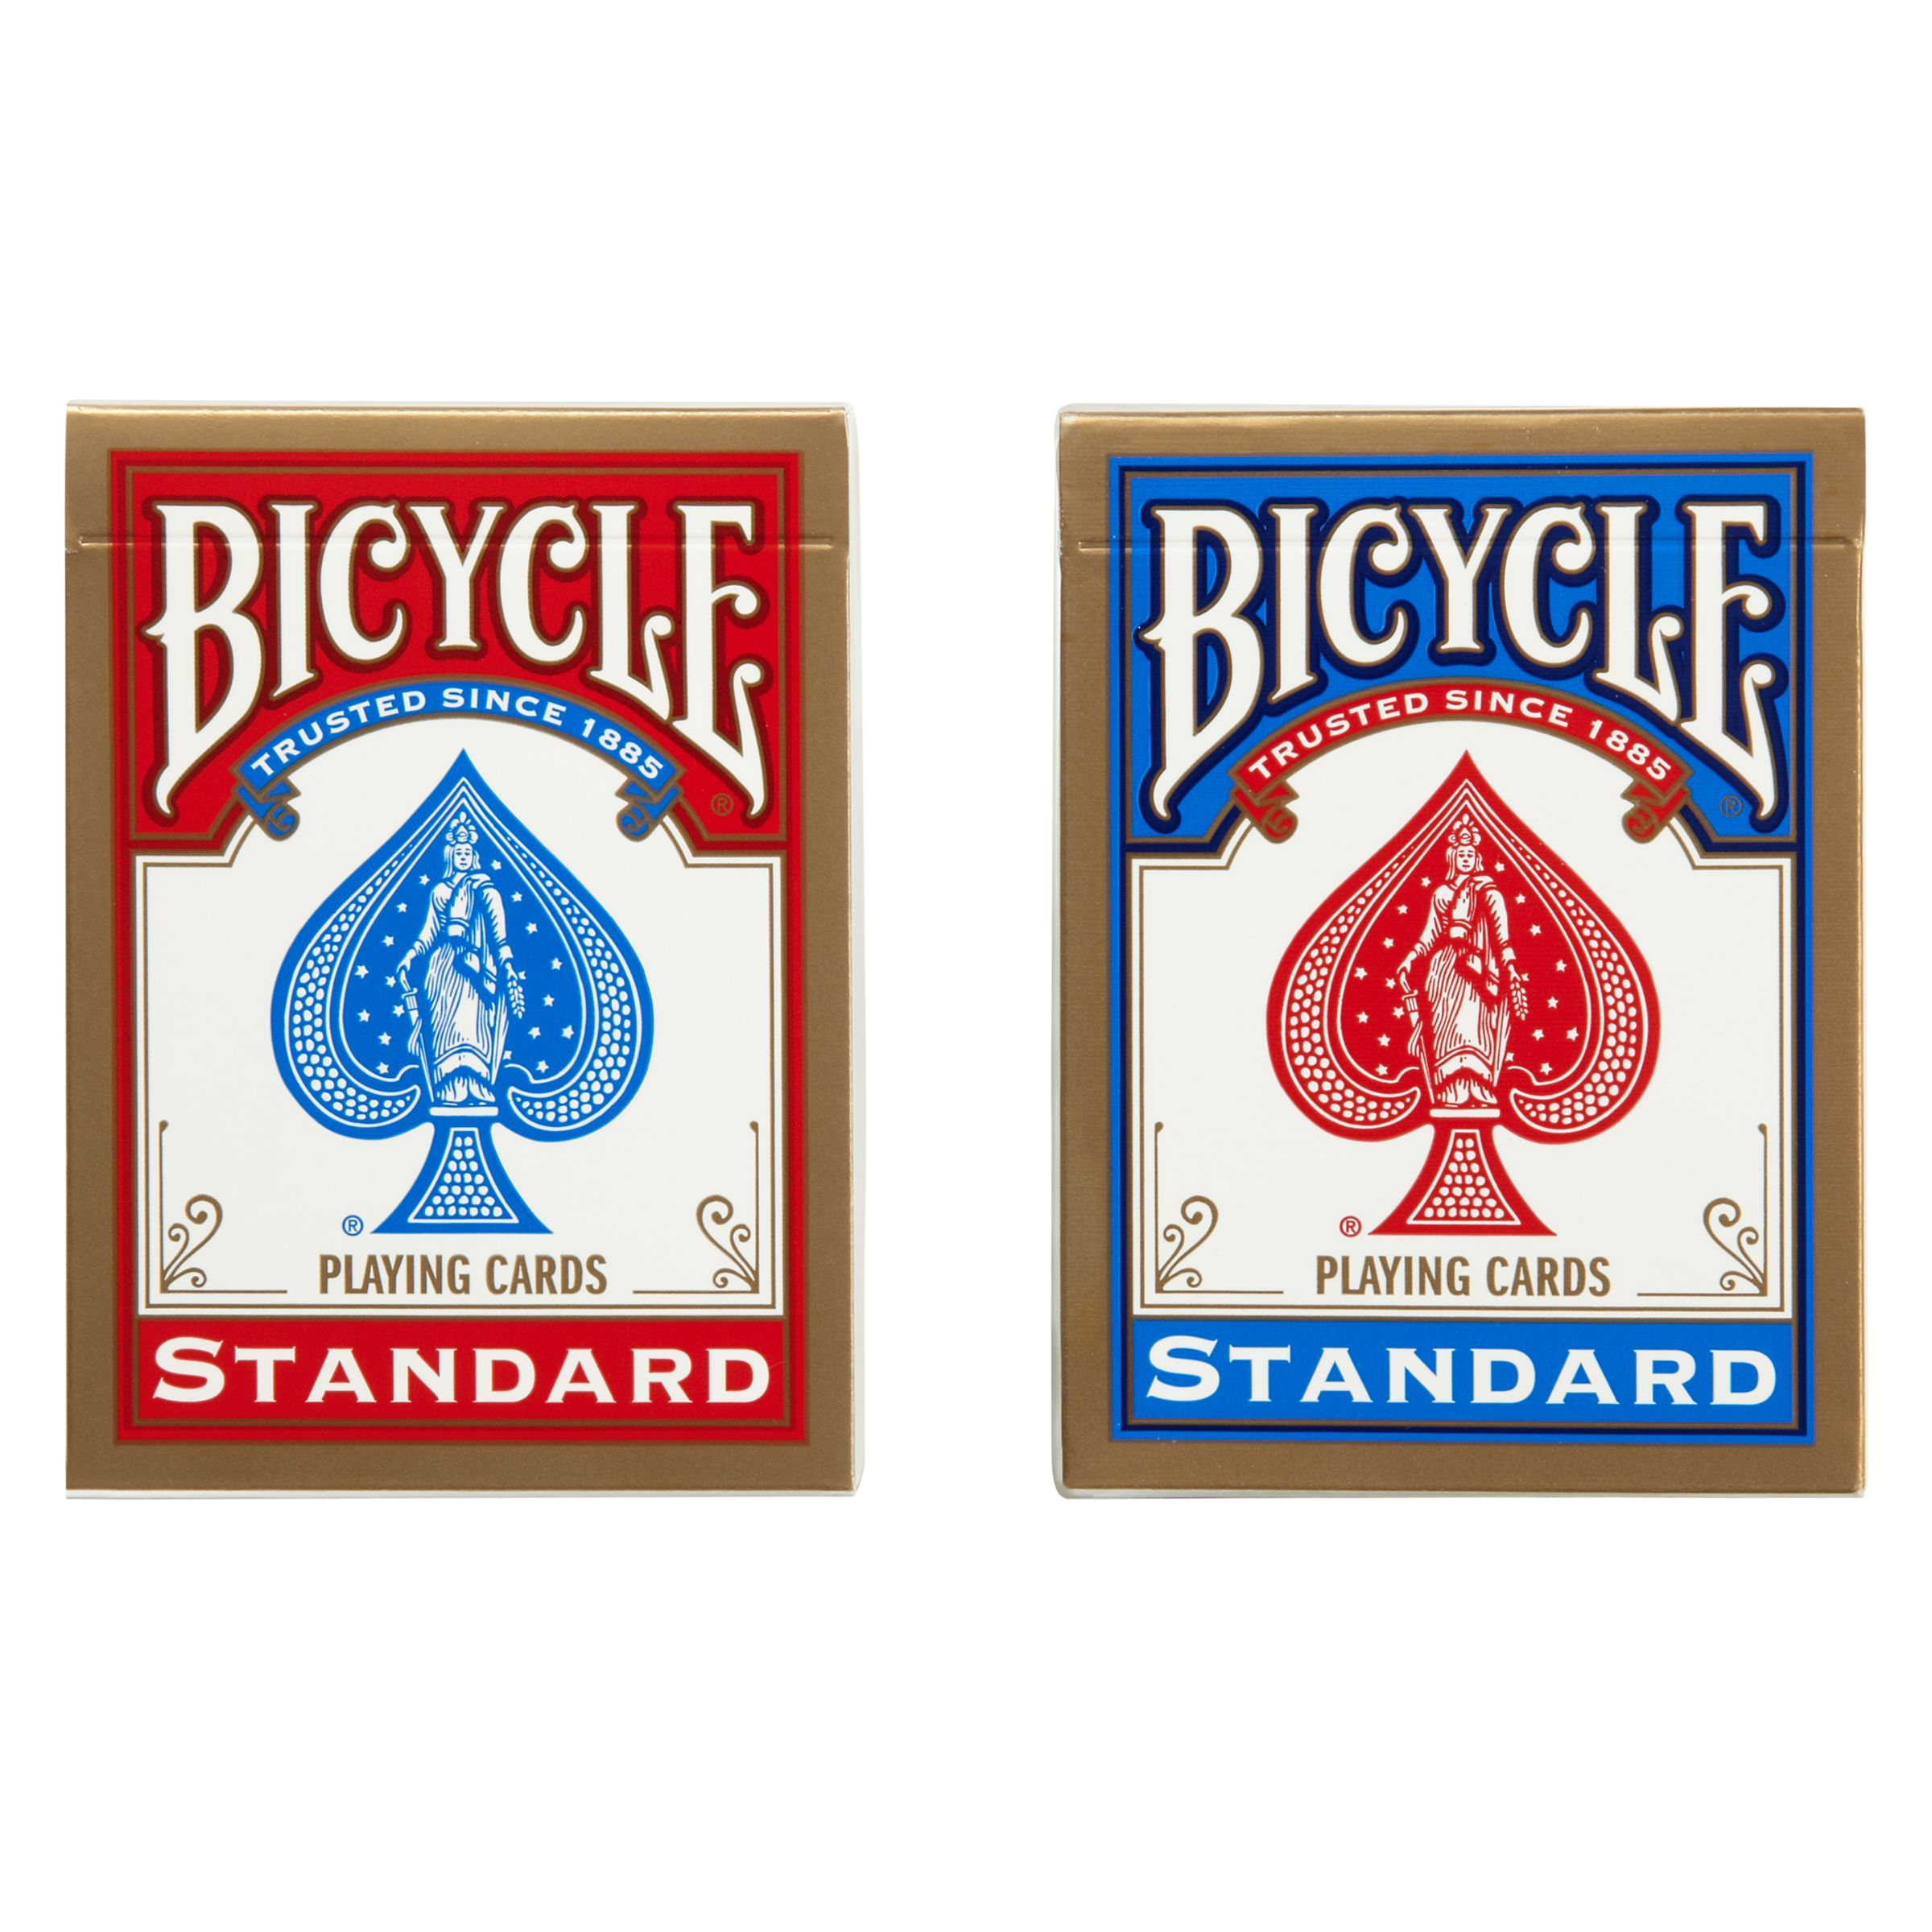 Bicycle Bicycle Playing Cards, Pack of 2